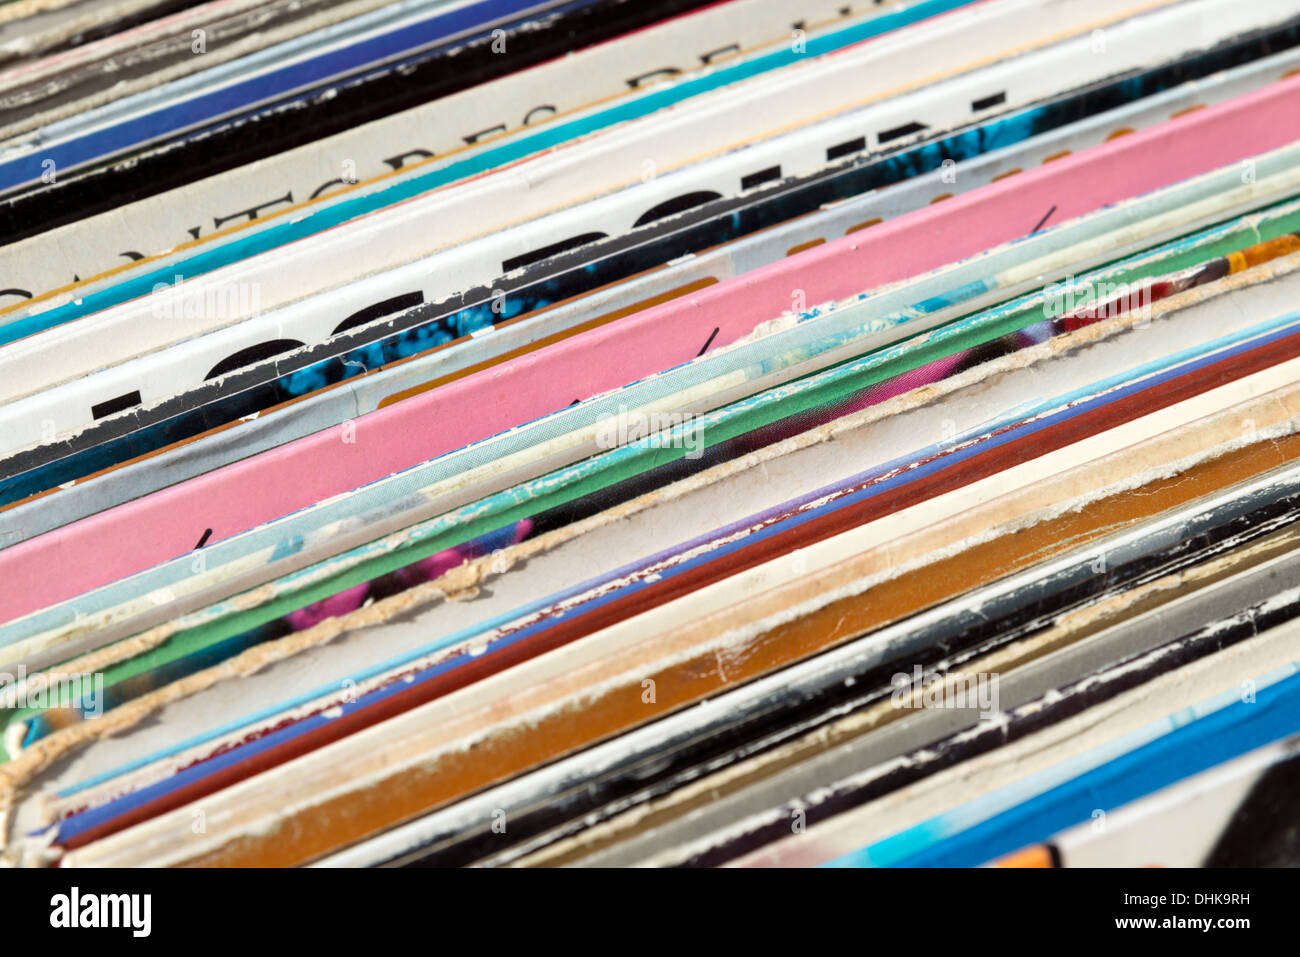 Secondhand vinyl records in a record shop, Madrid, Spain - Stock Image